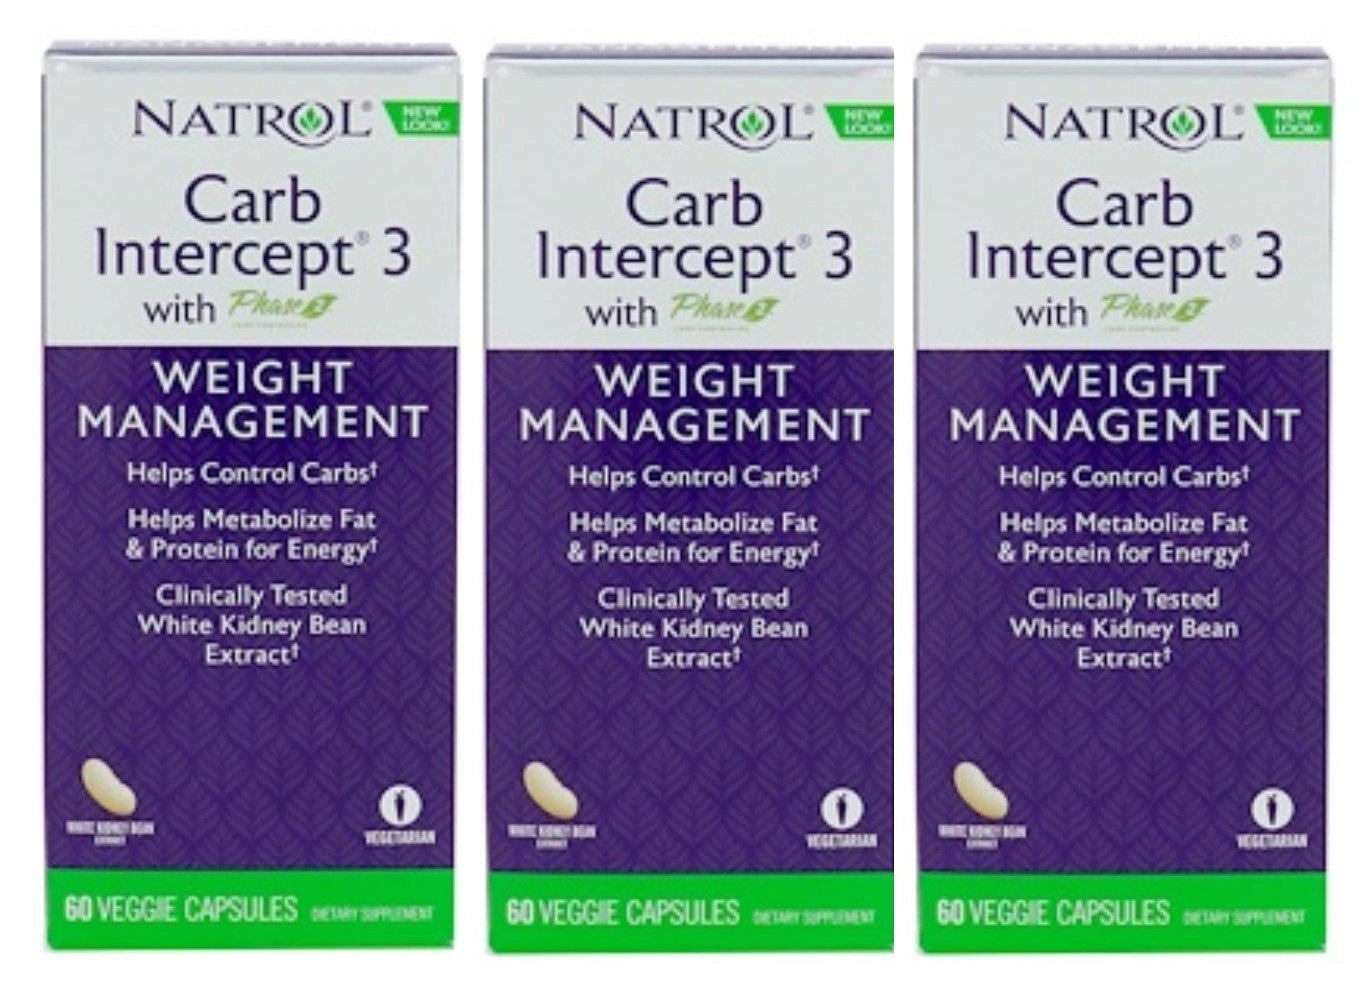 Natrol Carb Intercept 3 Capsules, 60-Count (Pack of 3) by Natrol